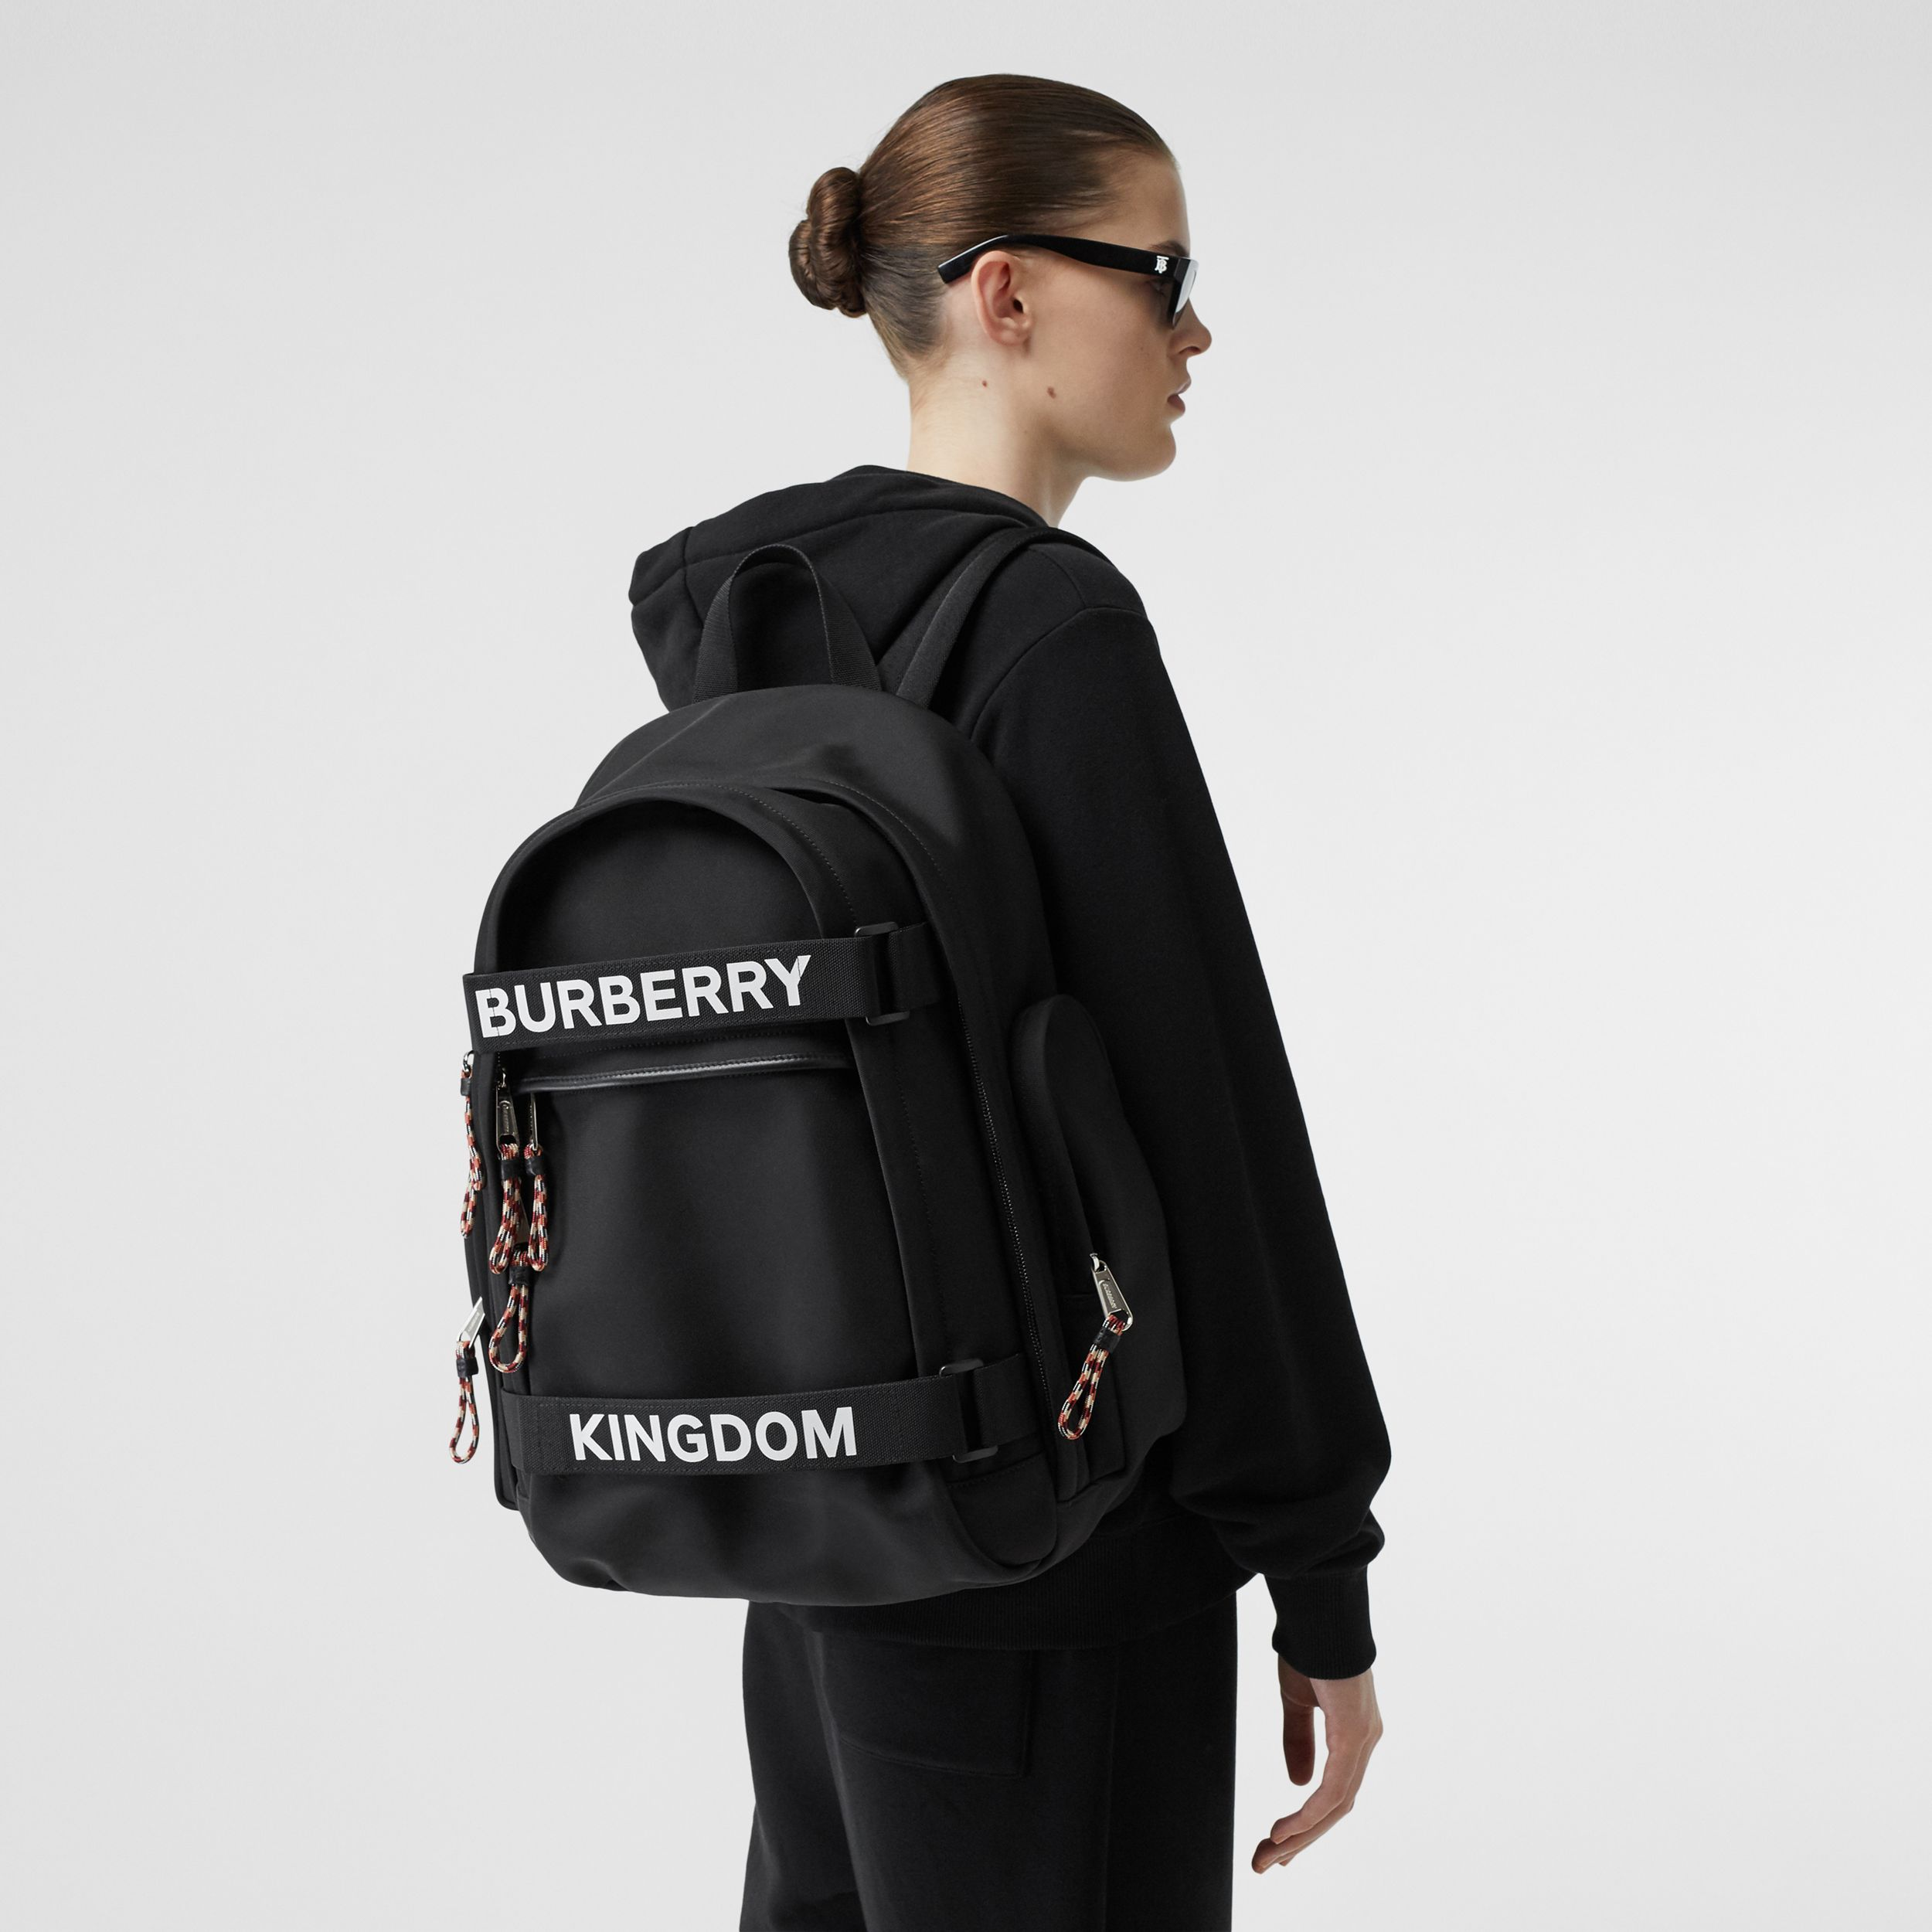 Large Logo and Kingdom Detail Nevis Backpack in Black/white | Burberry - 3